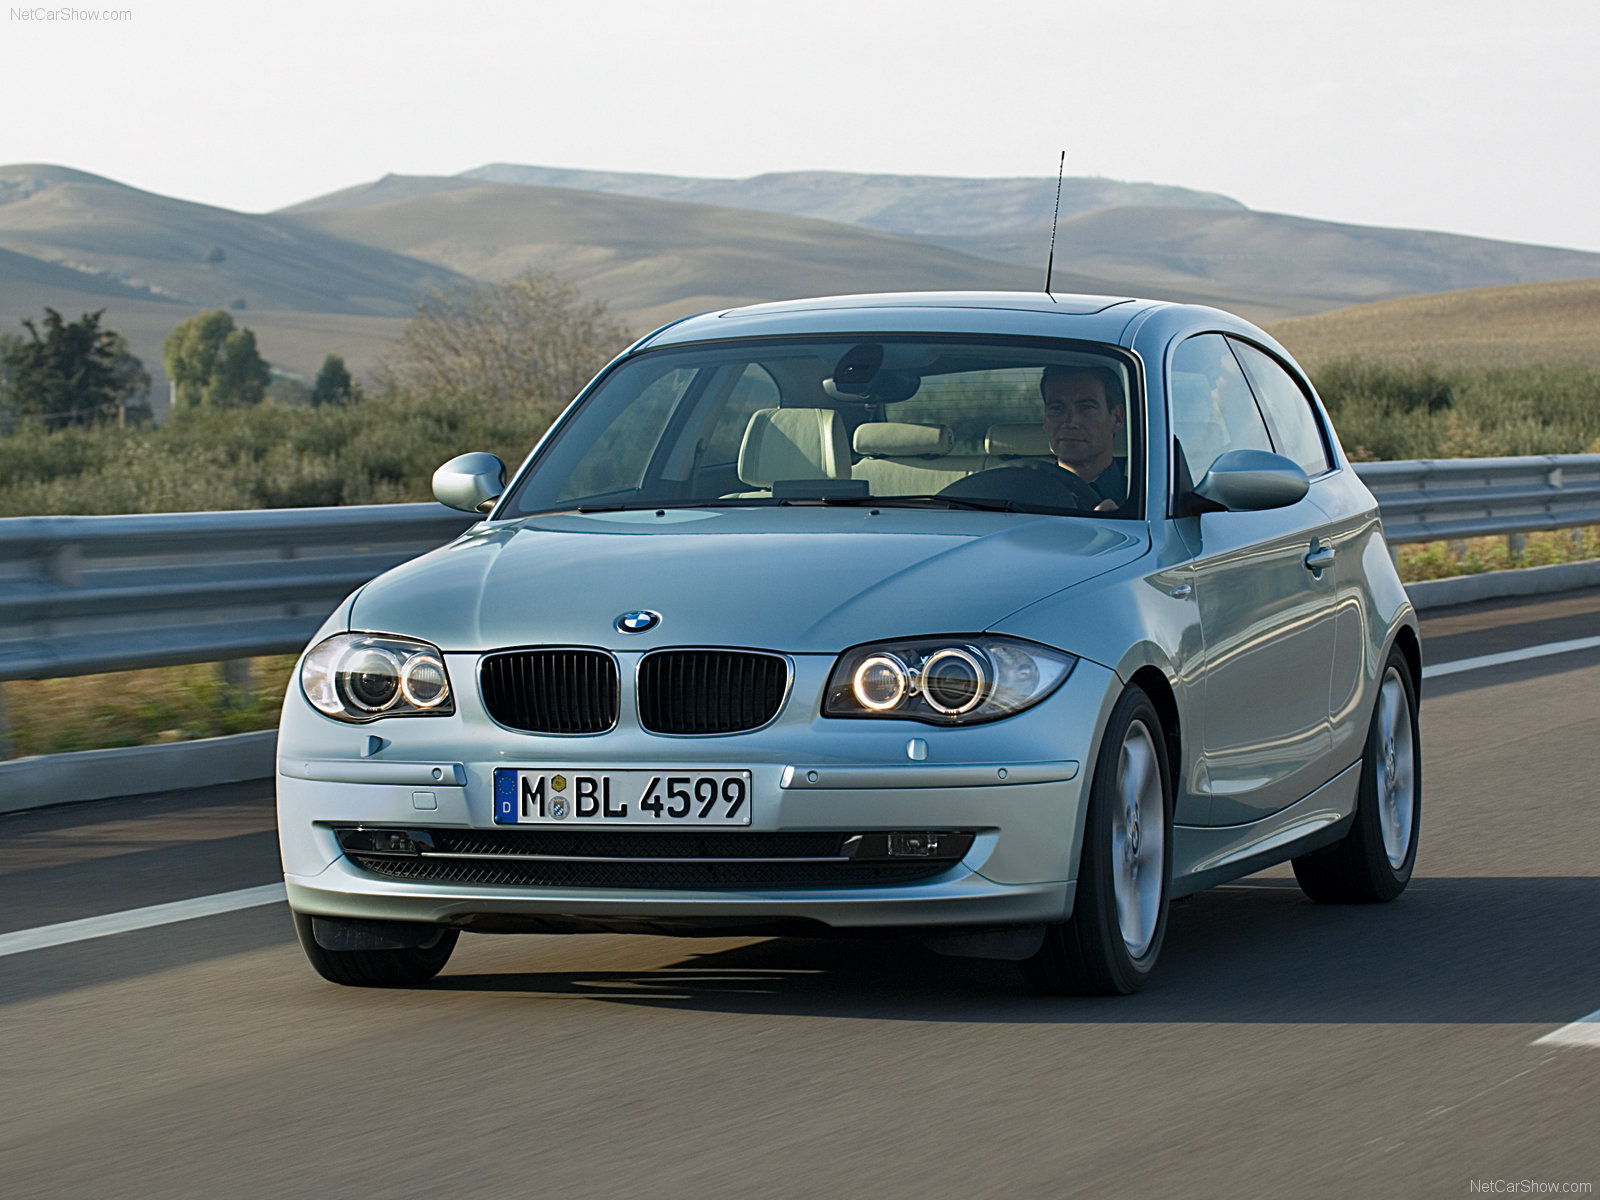 bmw 1 series 3 door e81 picture 40889 bmw photo gallery. Black Bedroom Furniture Sets. Home Design Ideas